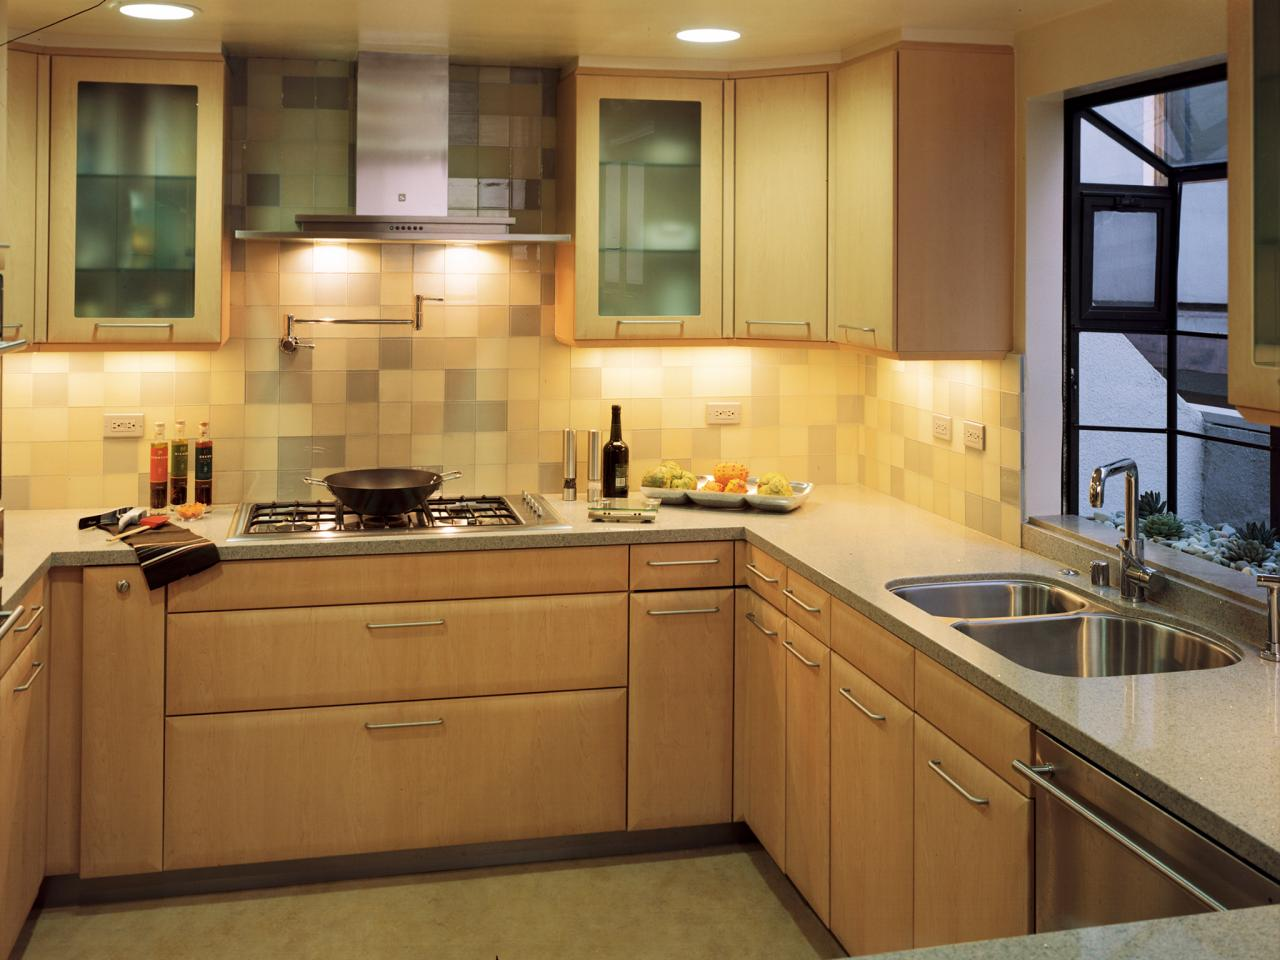 az to republic remodeler services our in phoenix remodel west scottsdale remodeling cost kitchen